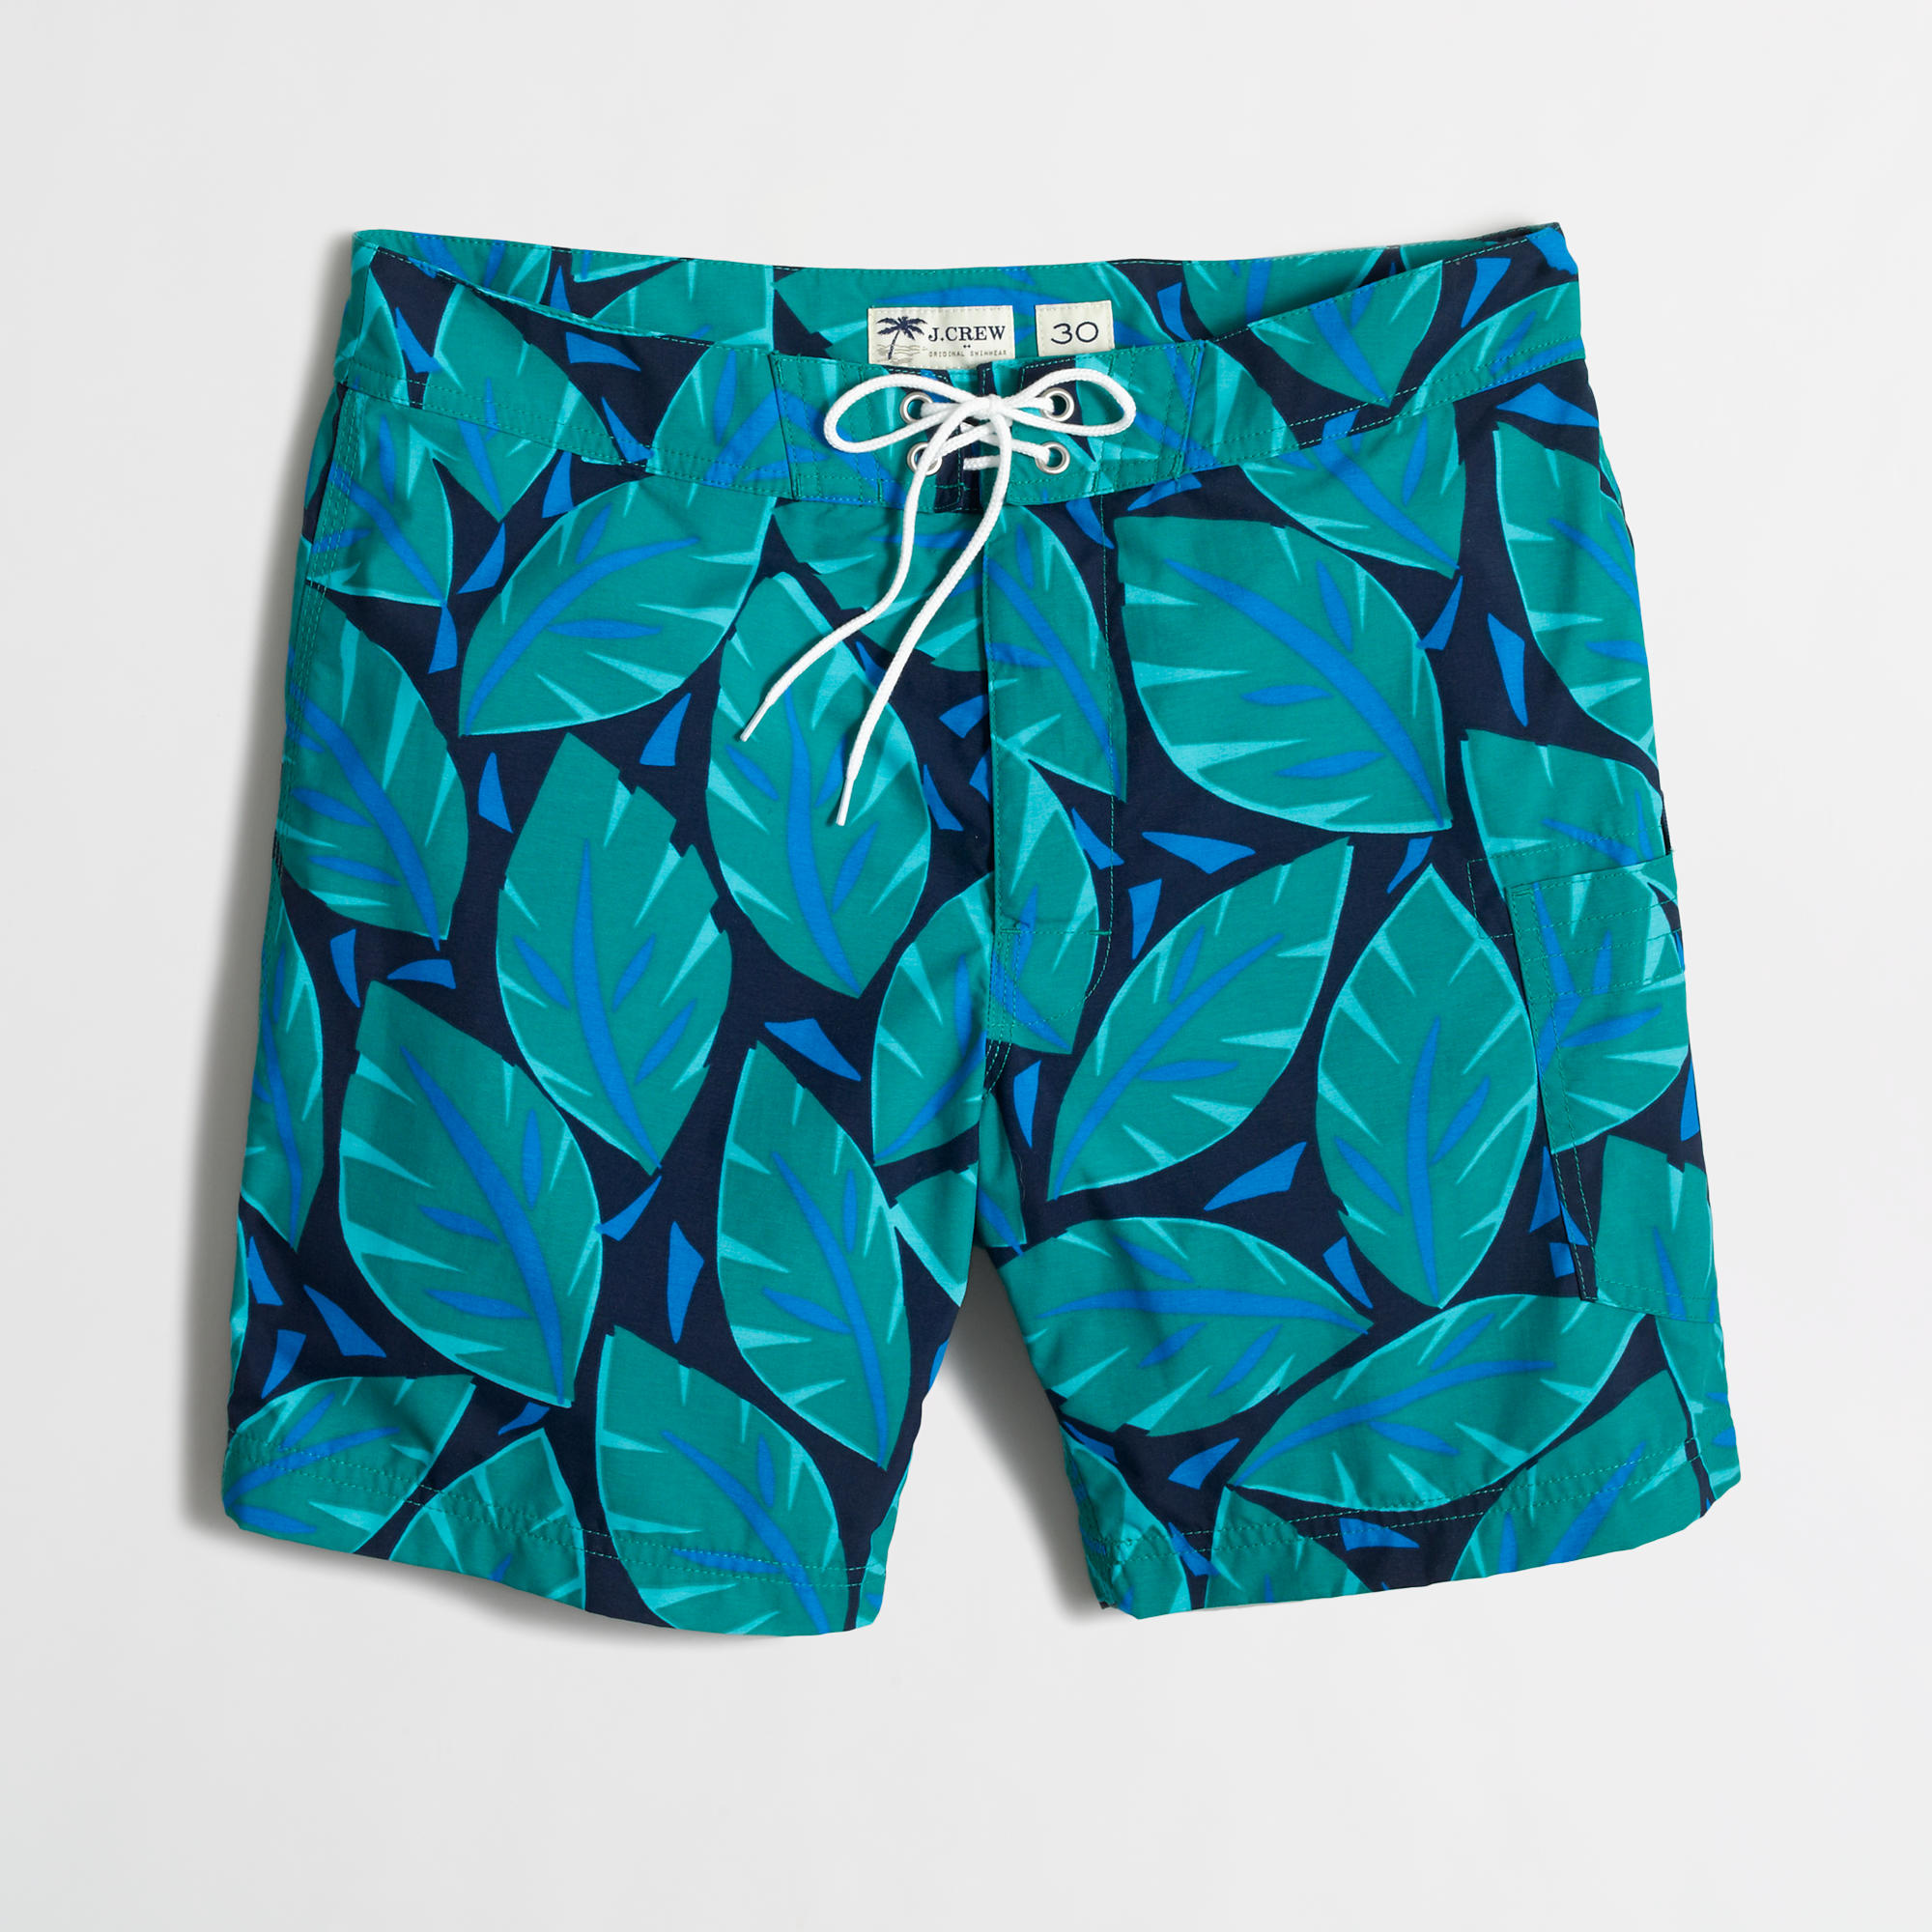 J.Crew Clearance